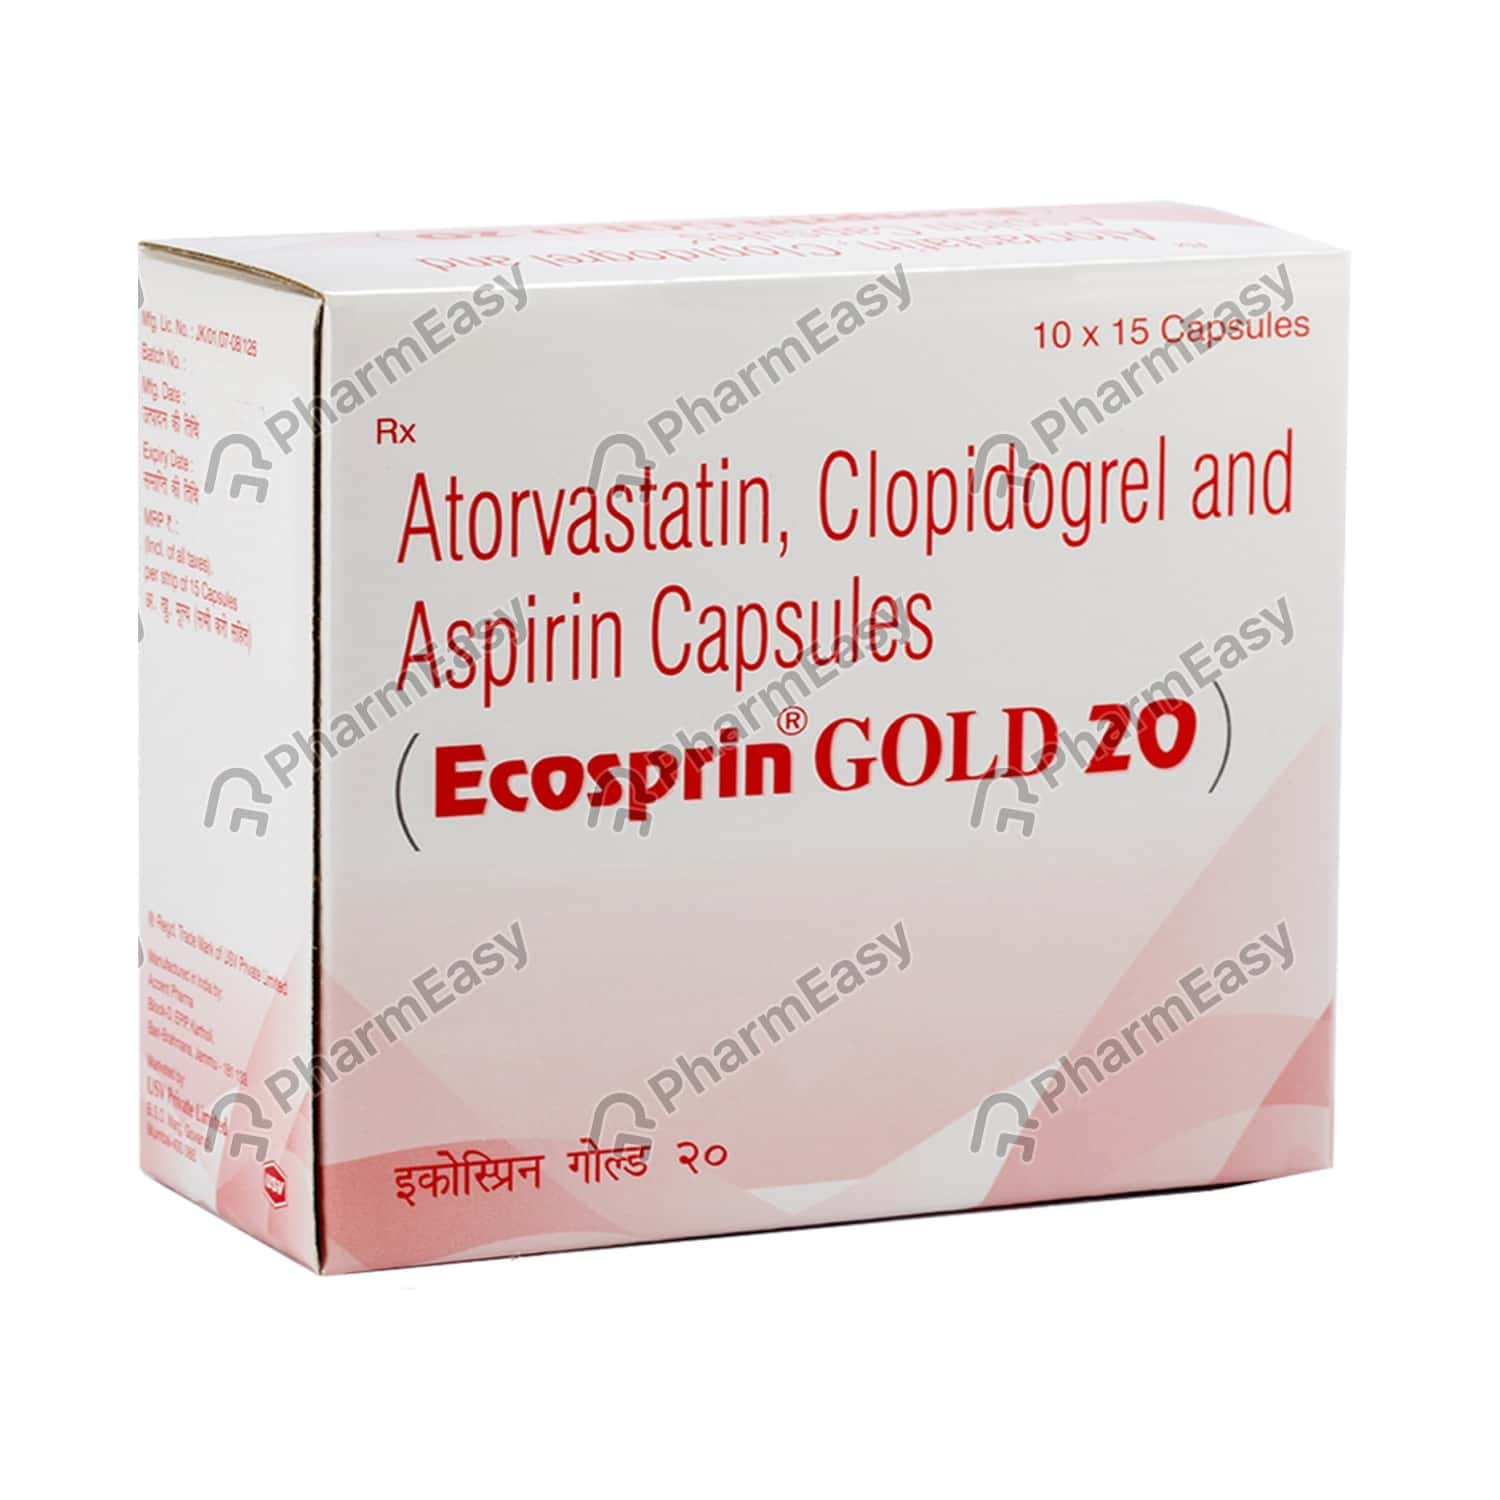 Ecosprin Gold 20mg Strip Of 15 Capsules